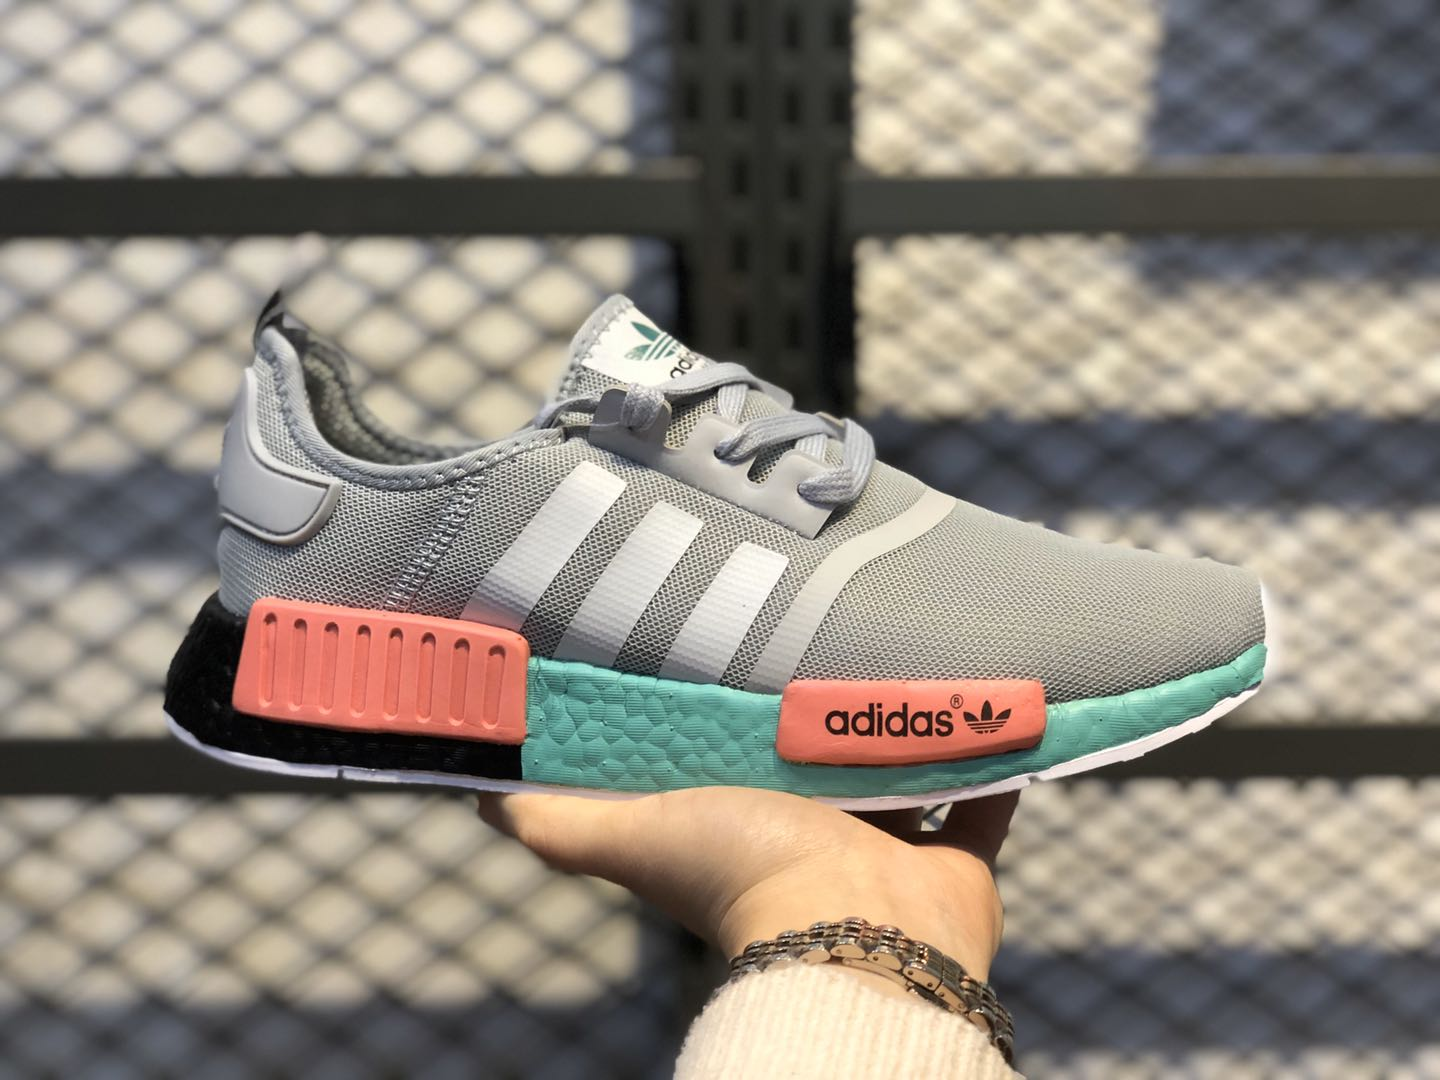 2020 Adidas NMD R1 Grey/Teal-Signal Coral In Stock FX4353